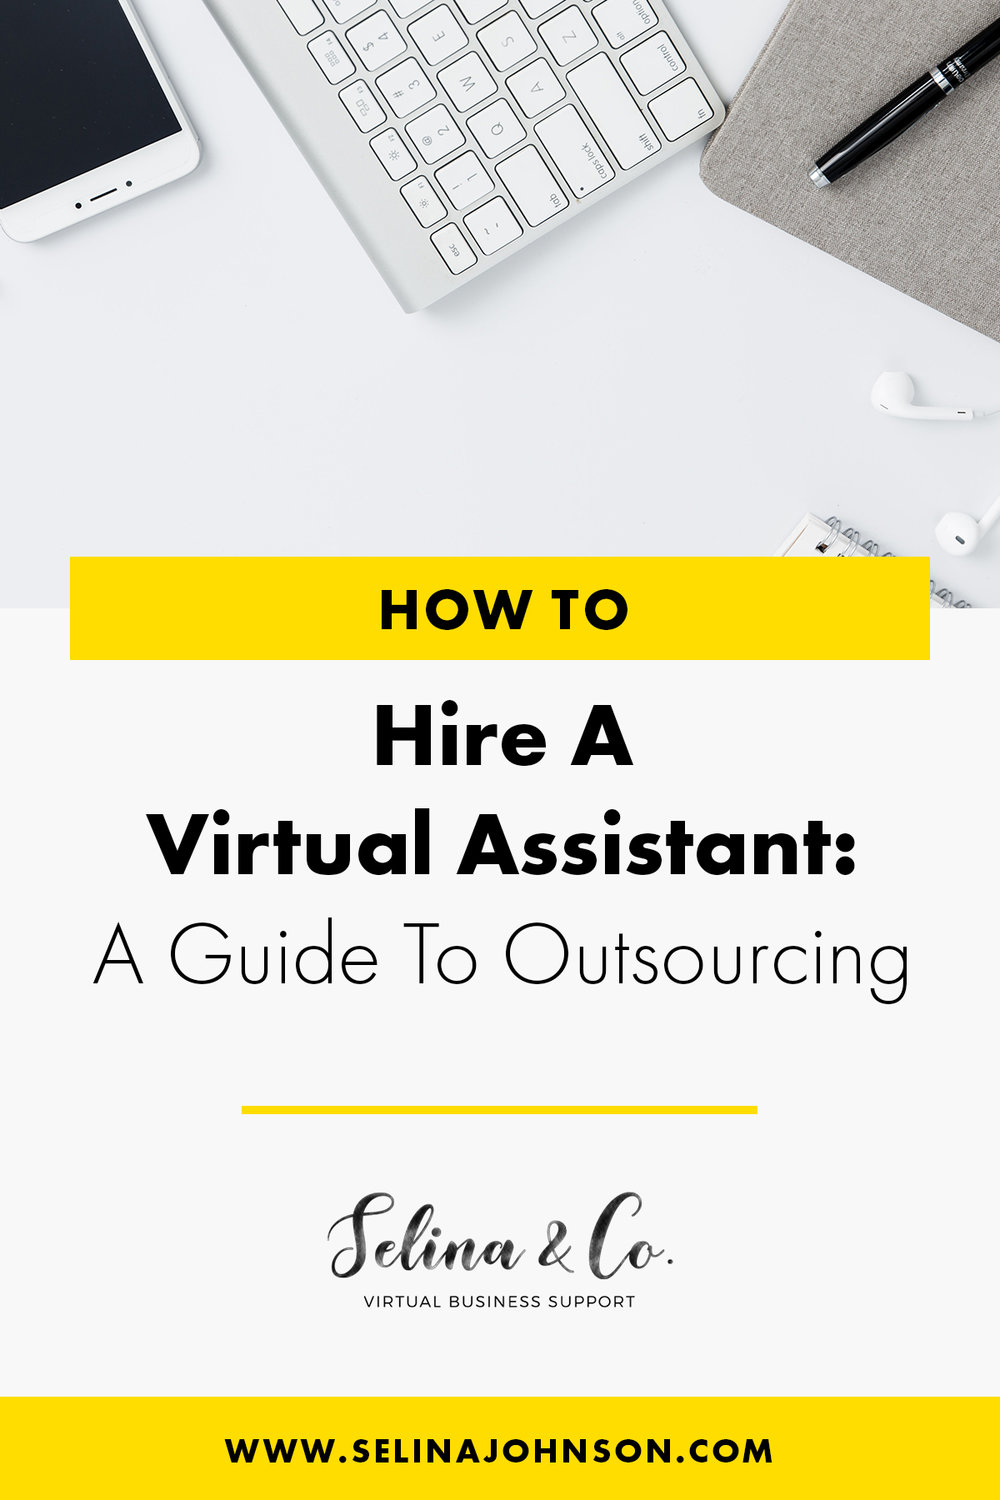 how-to-hire-a-virtual-assistant-outsource.jpg